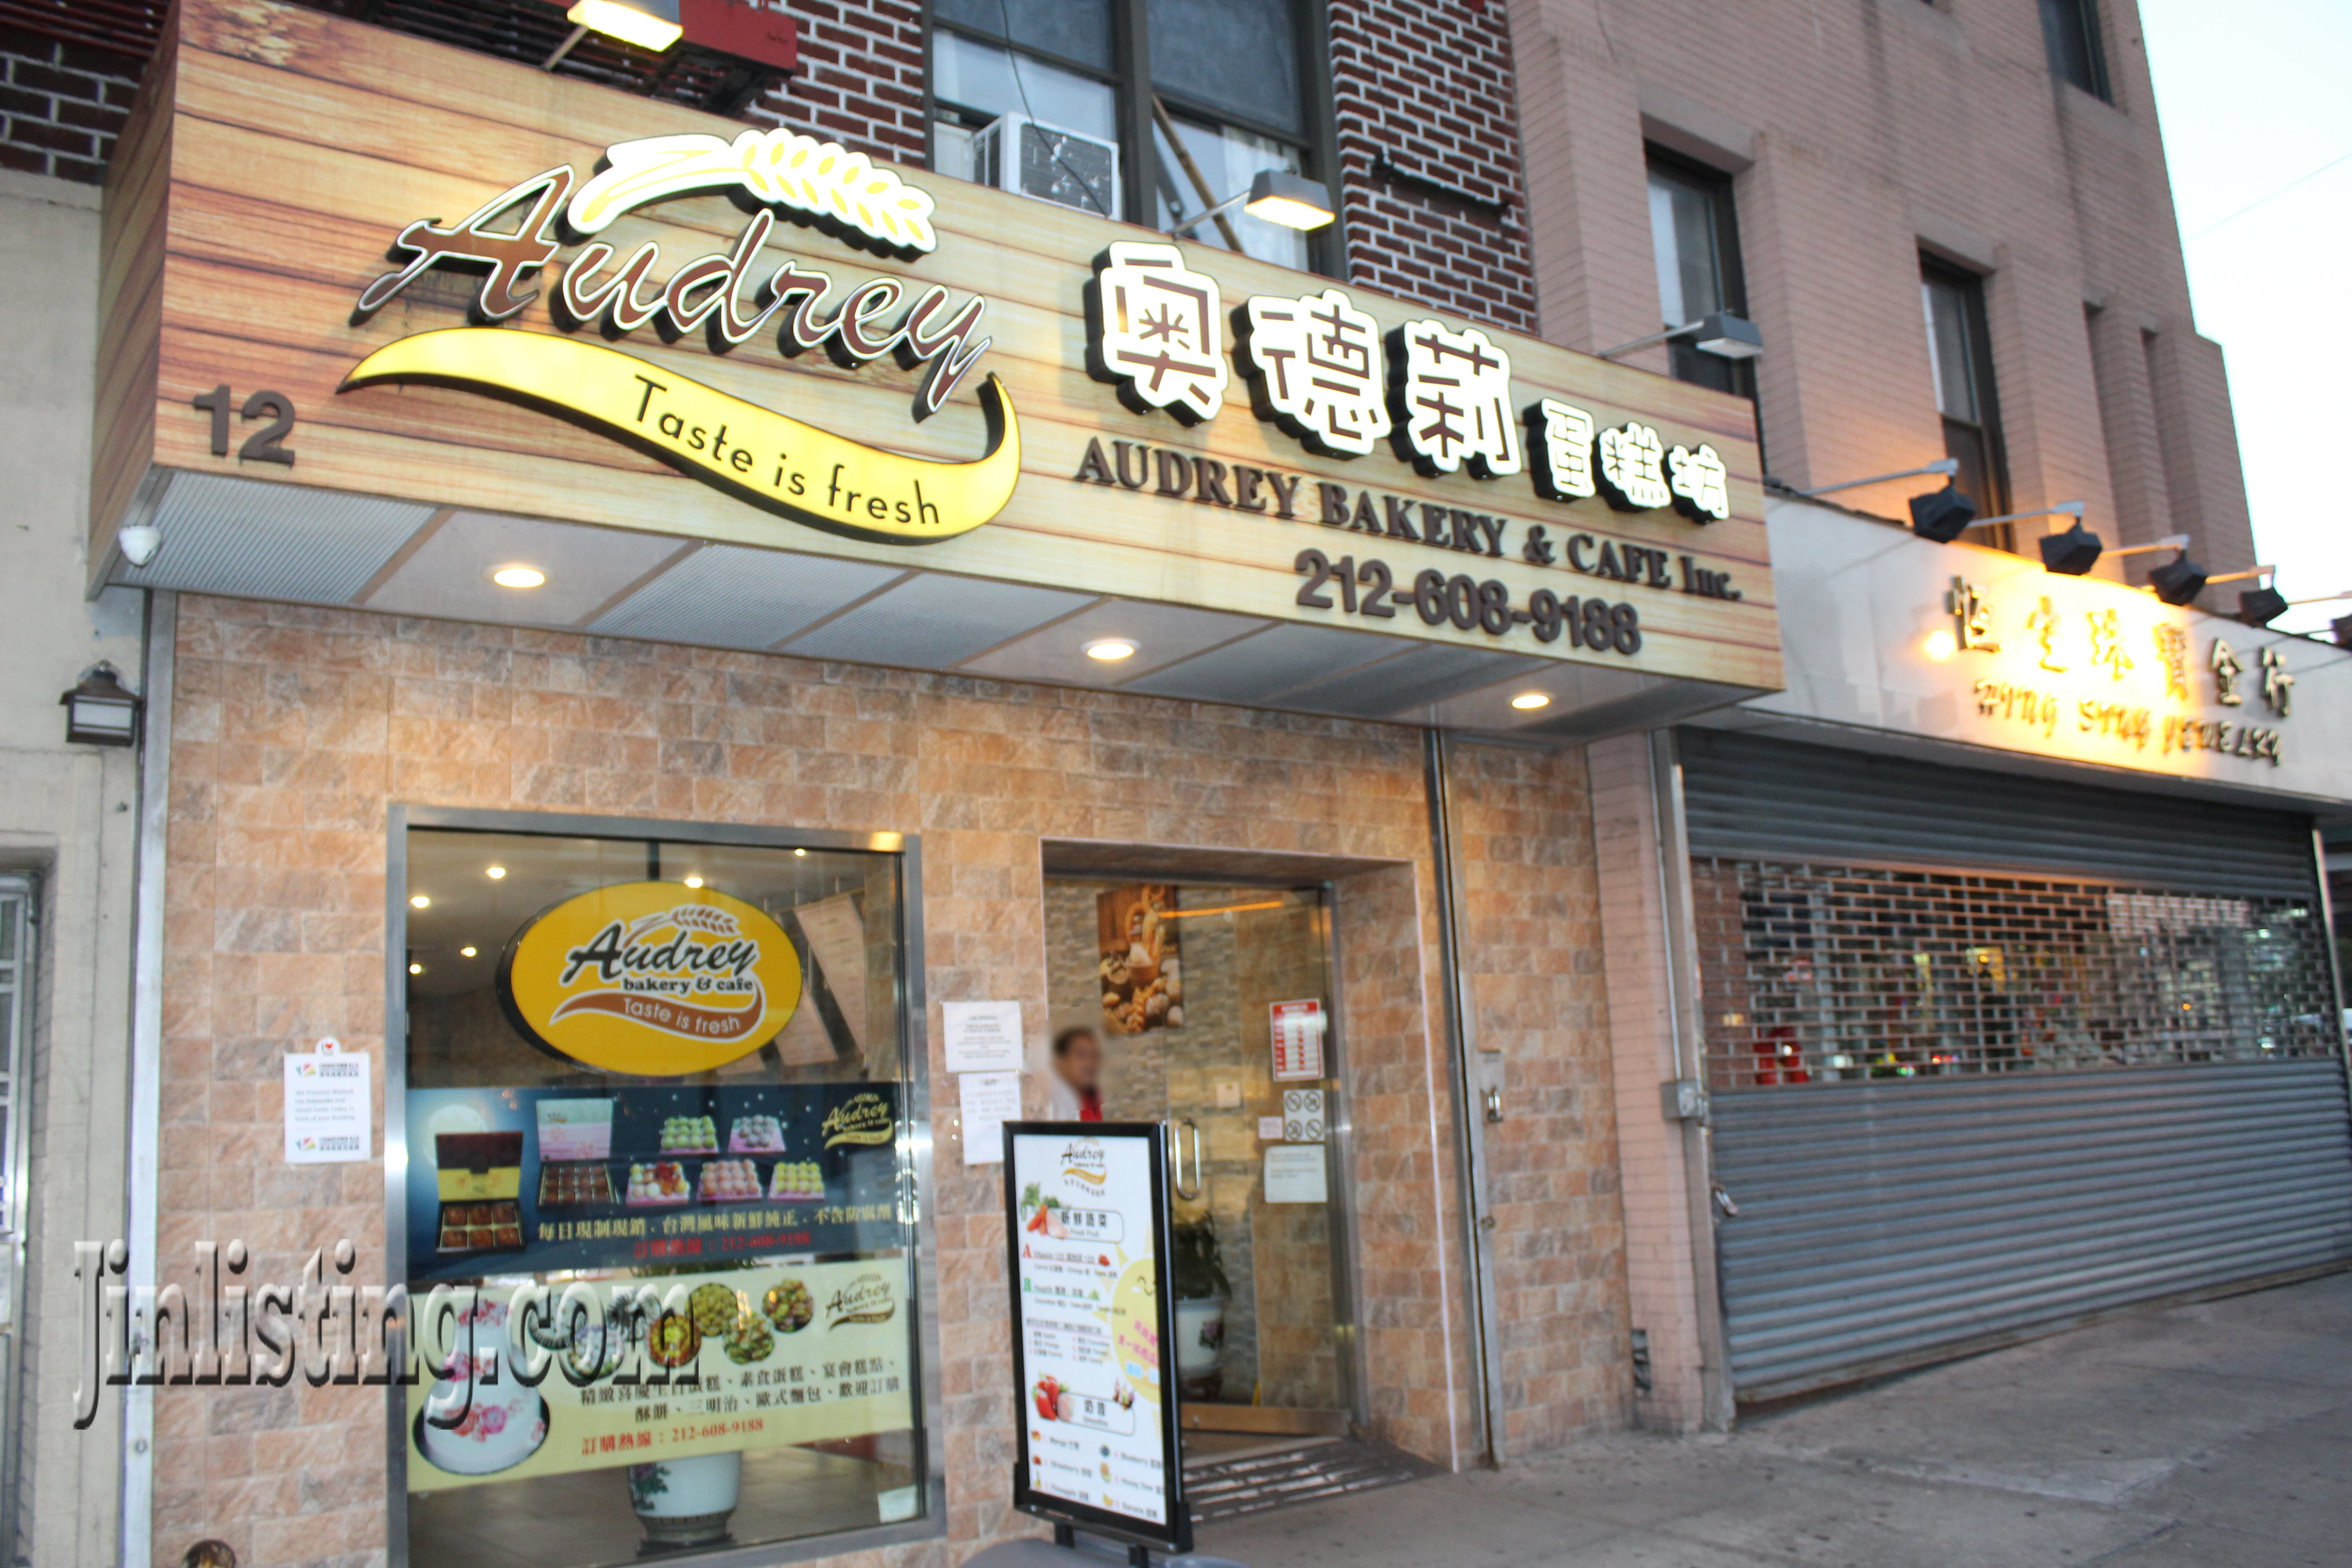 Audrey Bakery And Cafe Inc